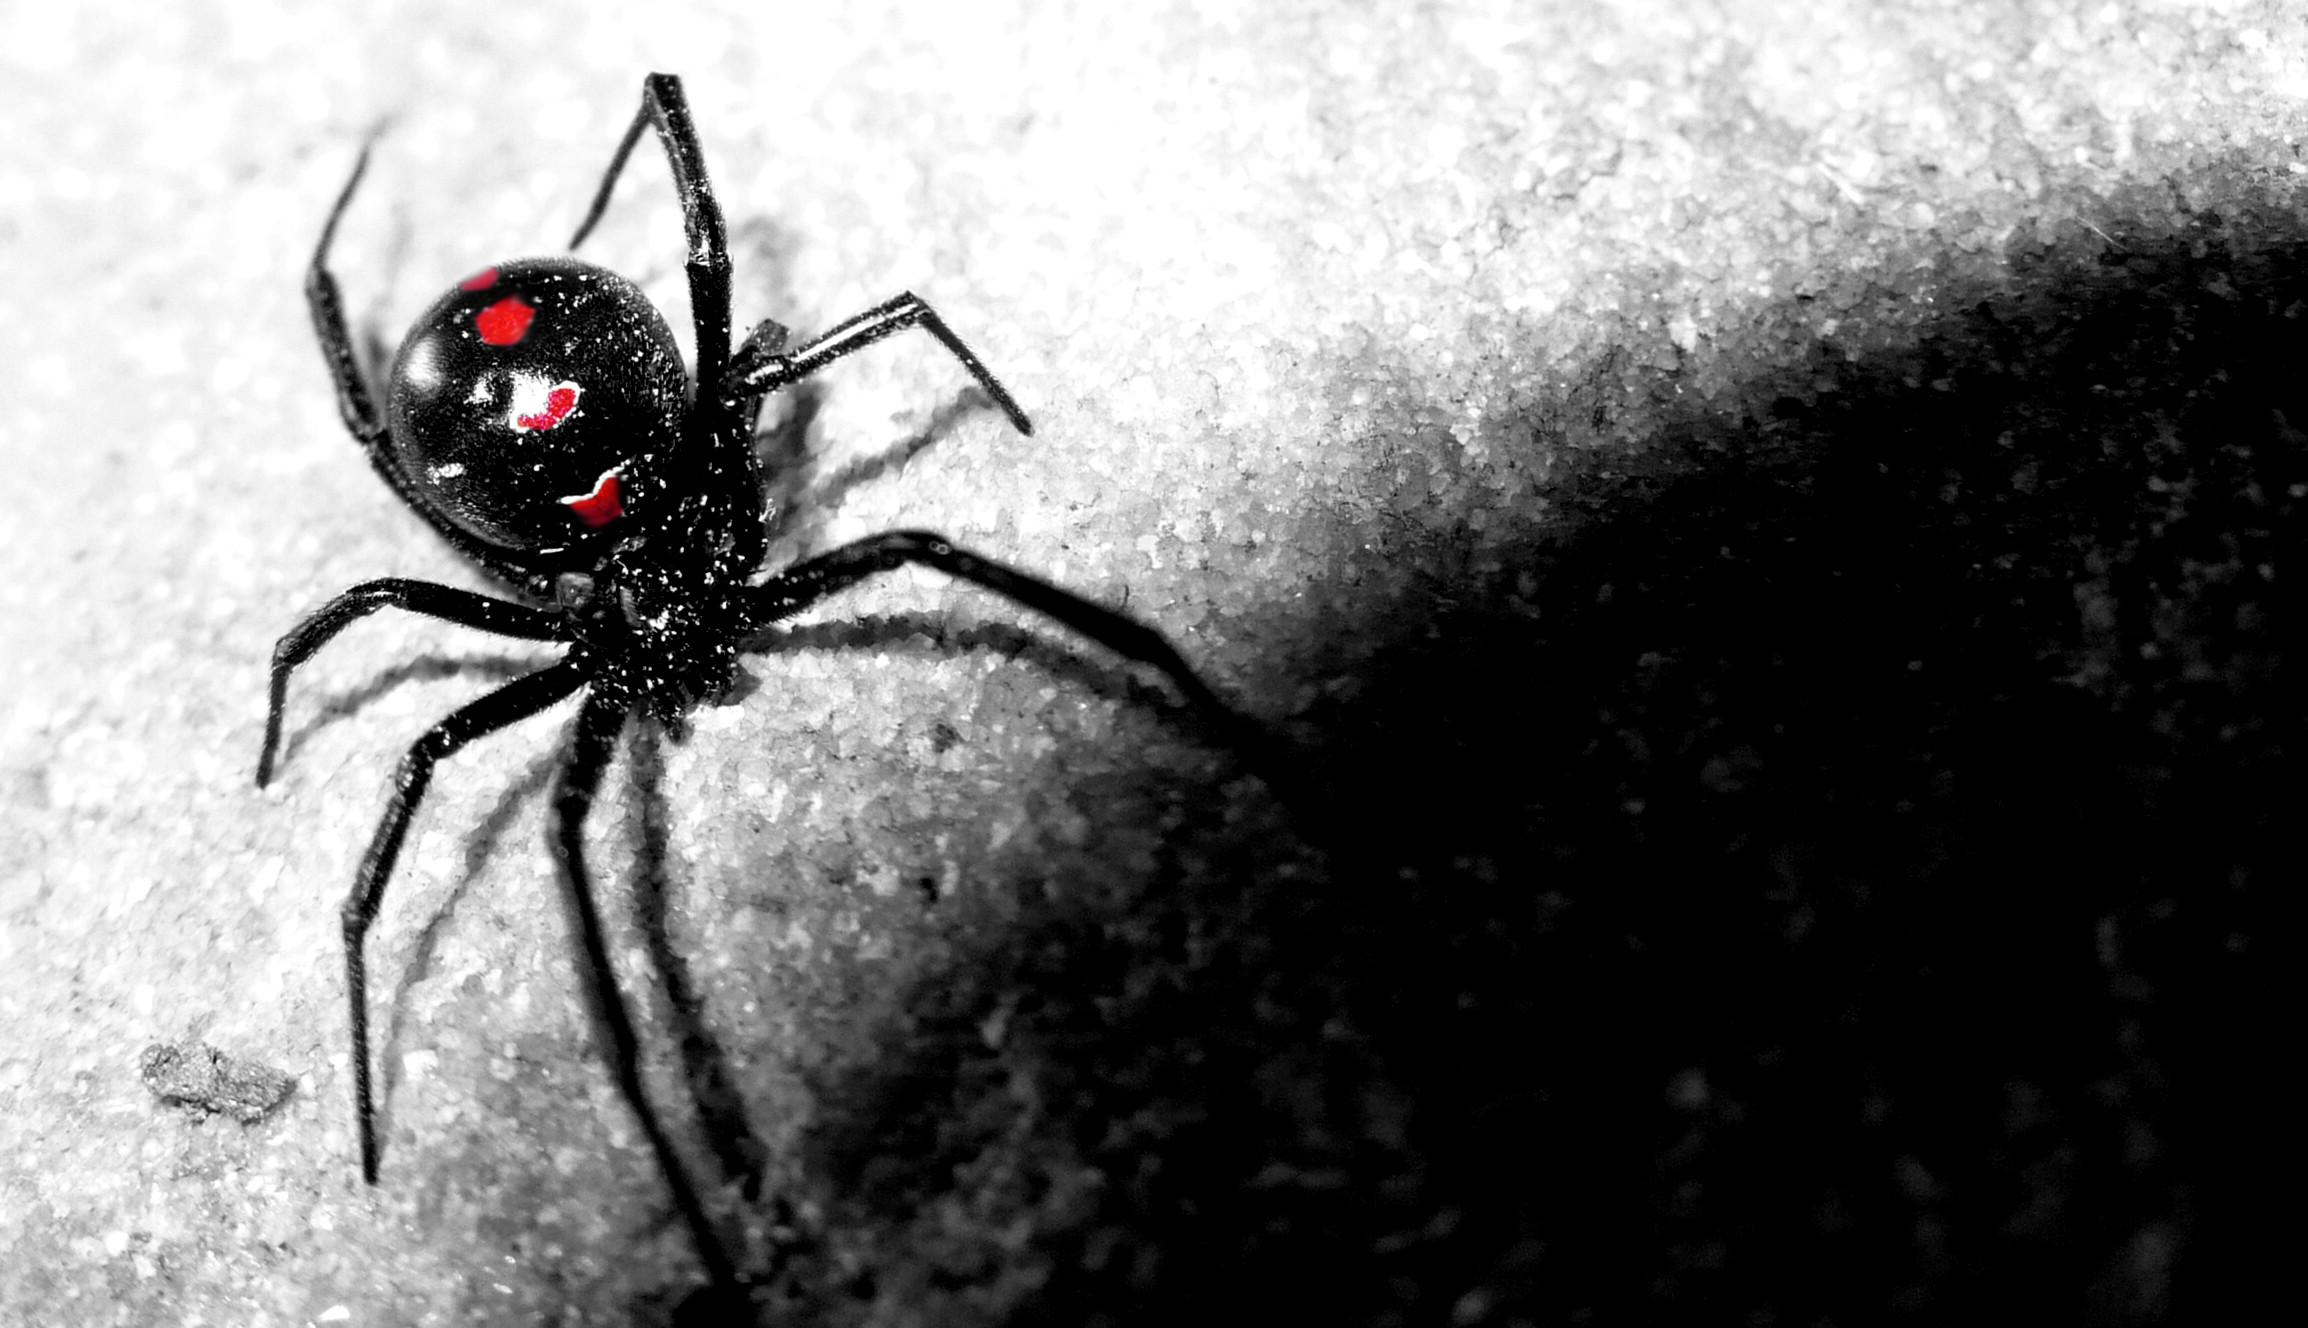 Black Widow Spider Wallpaper 72 Images